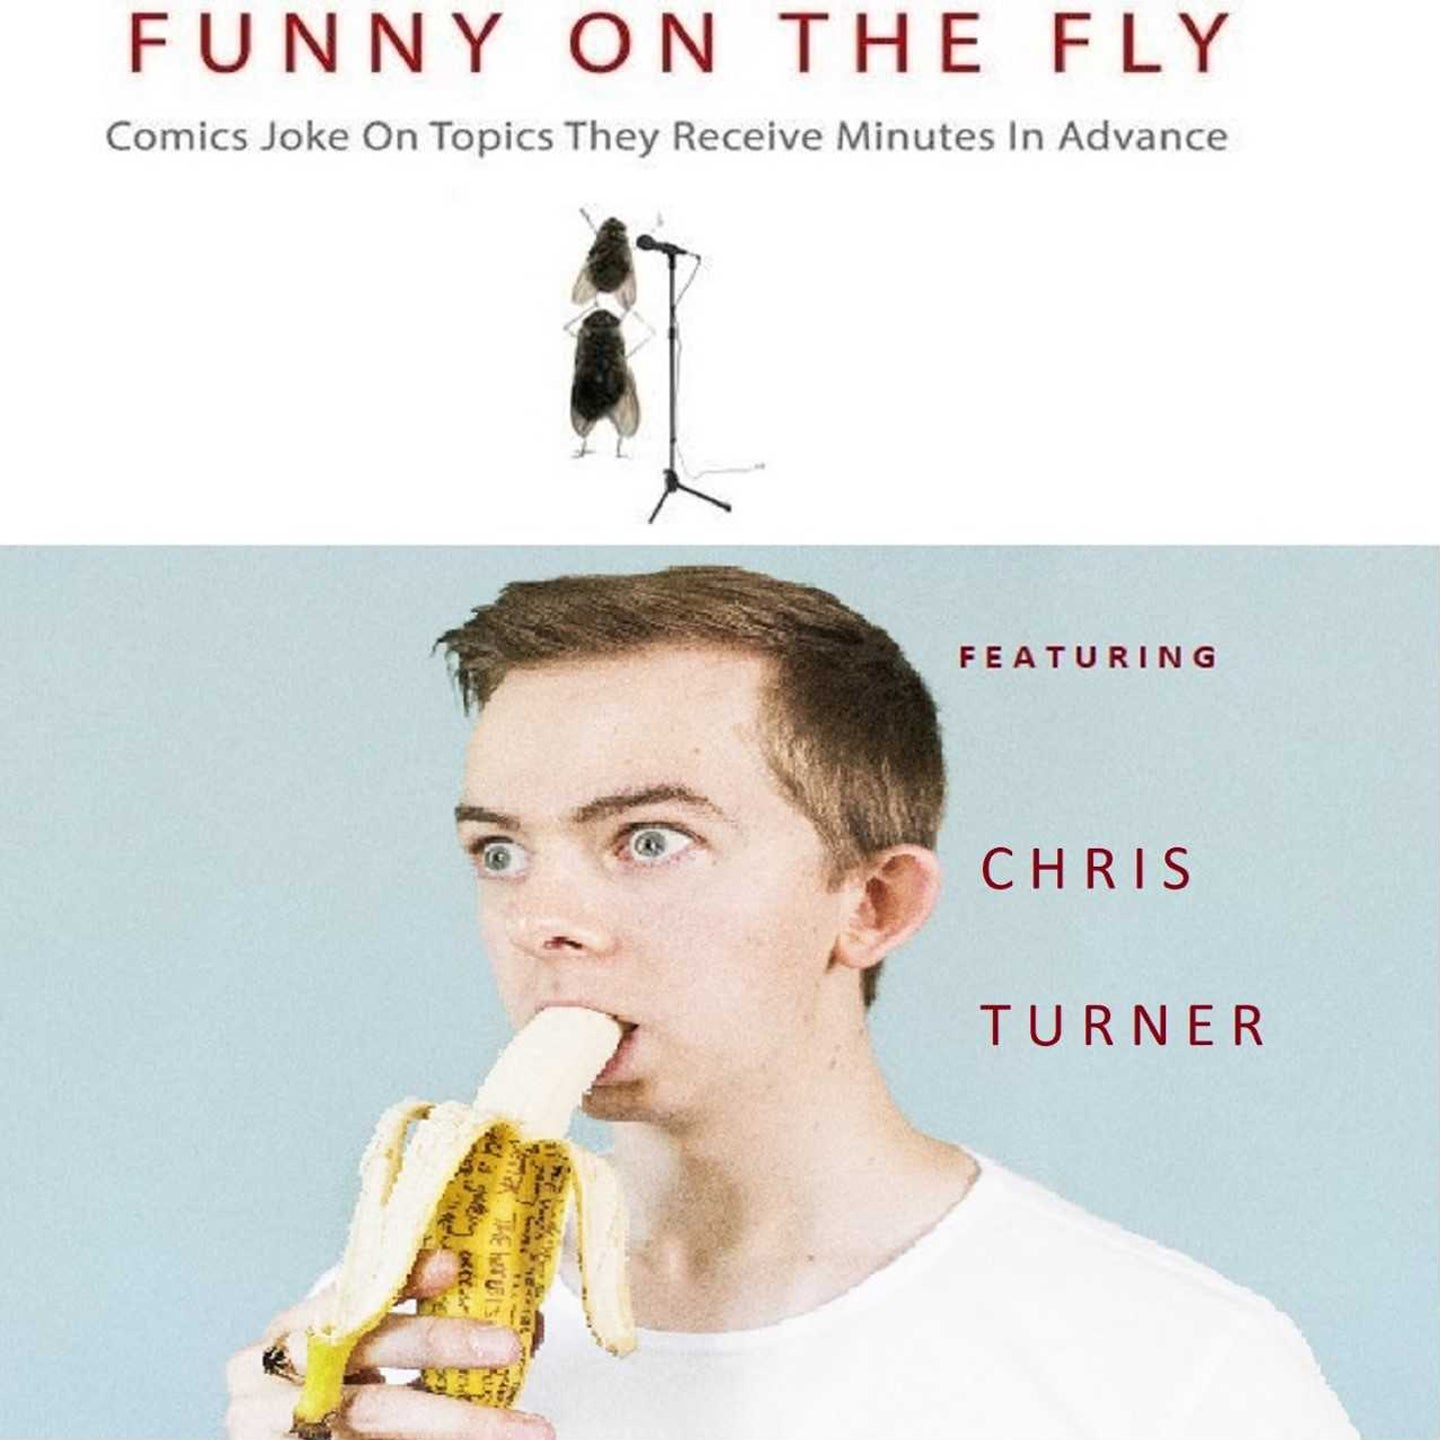 Funny on The Fly featuring Chris Turner